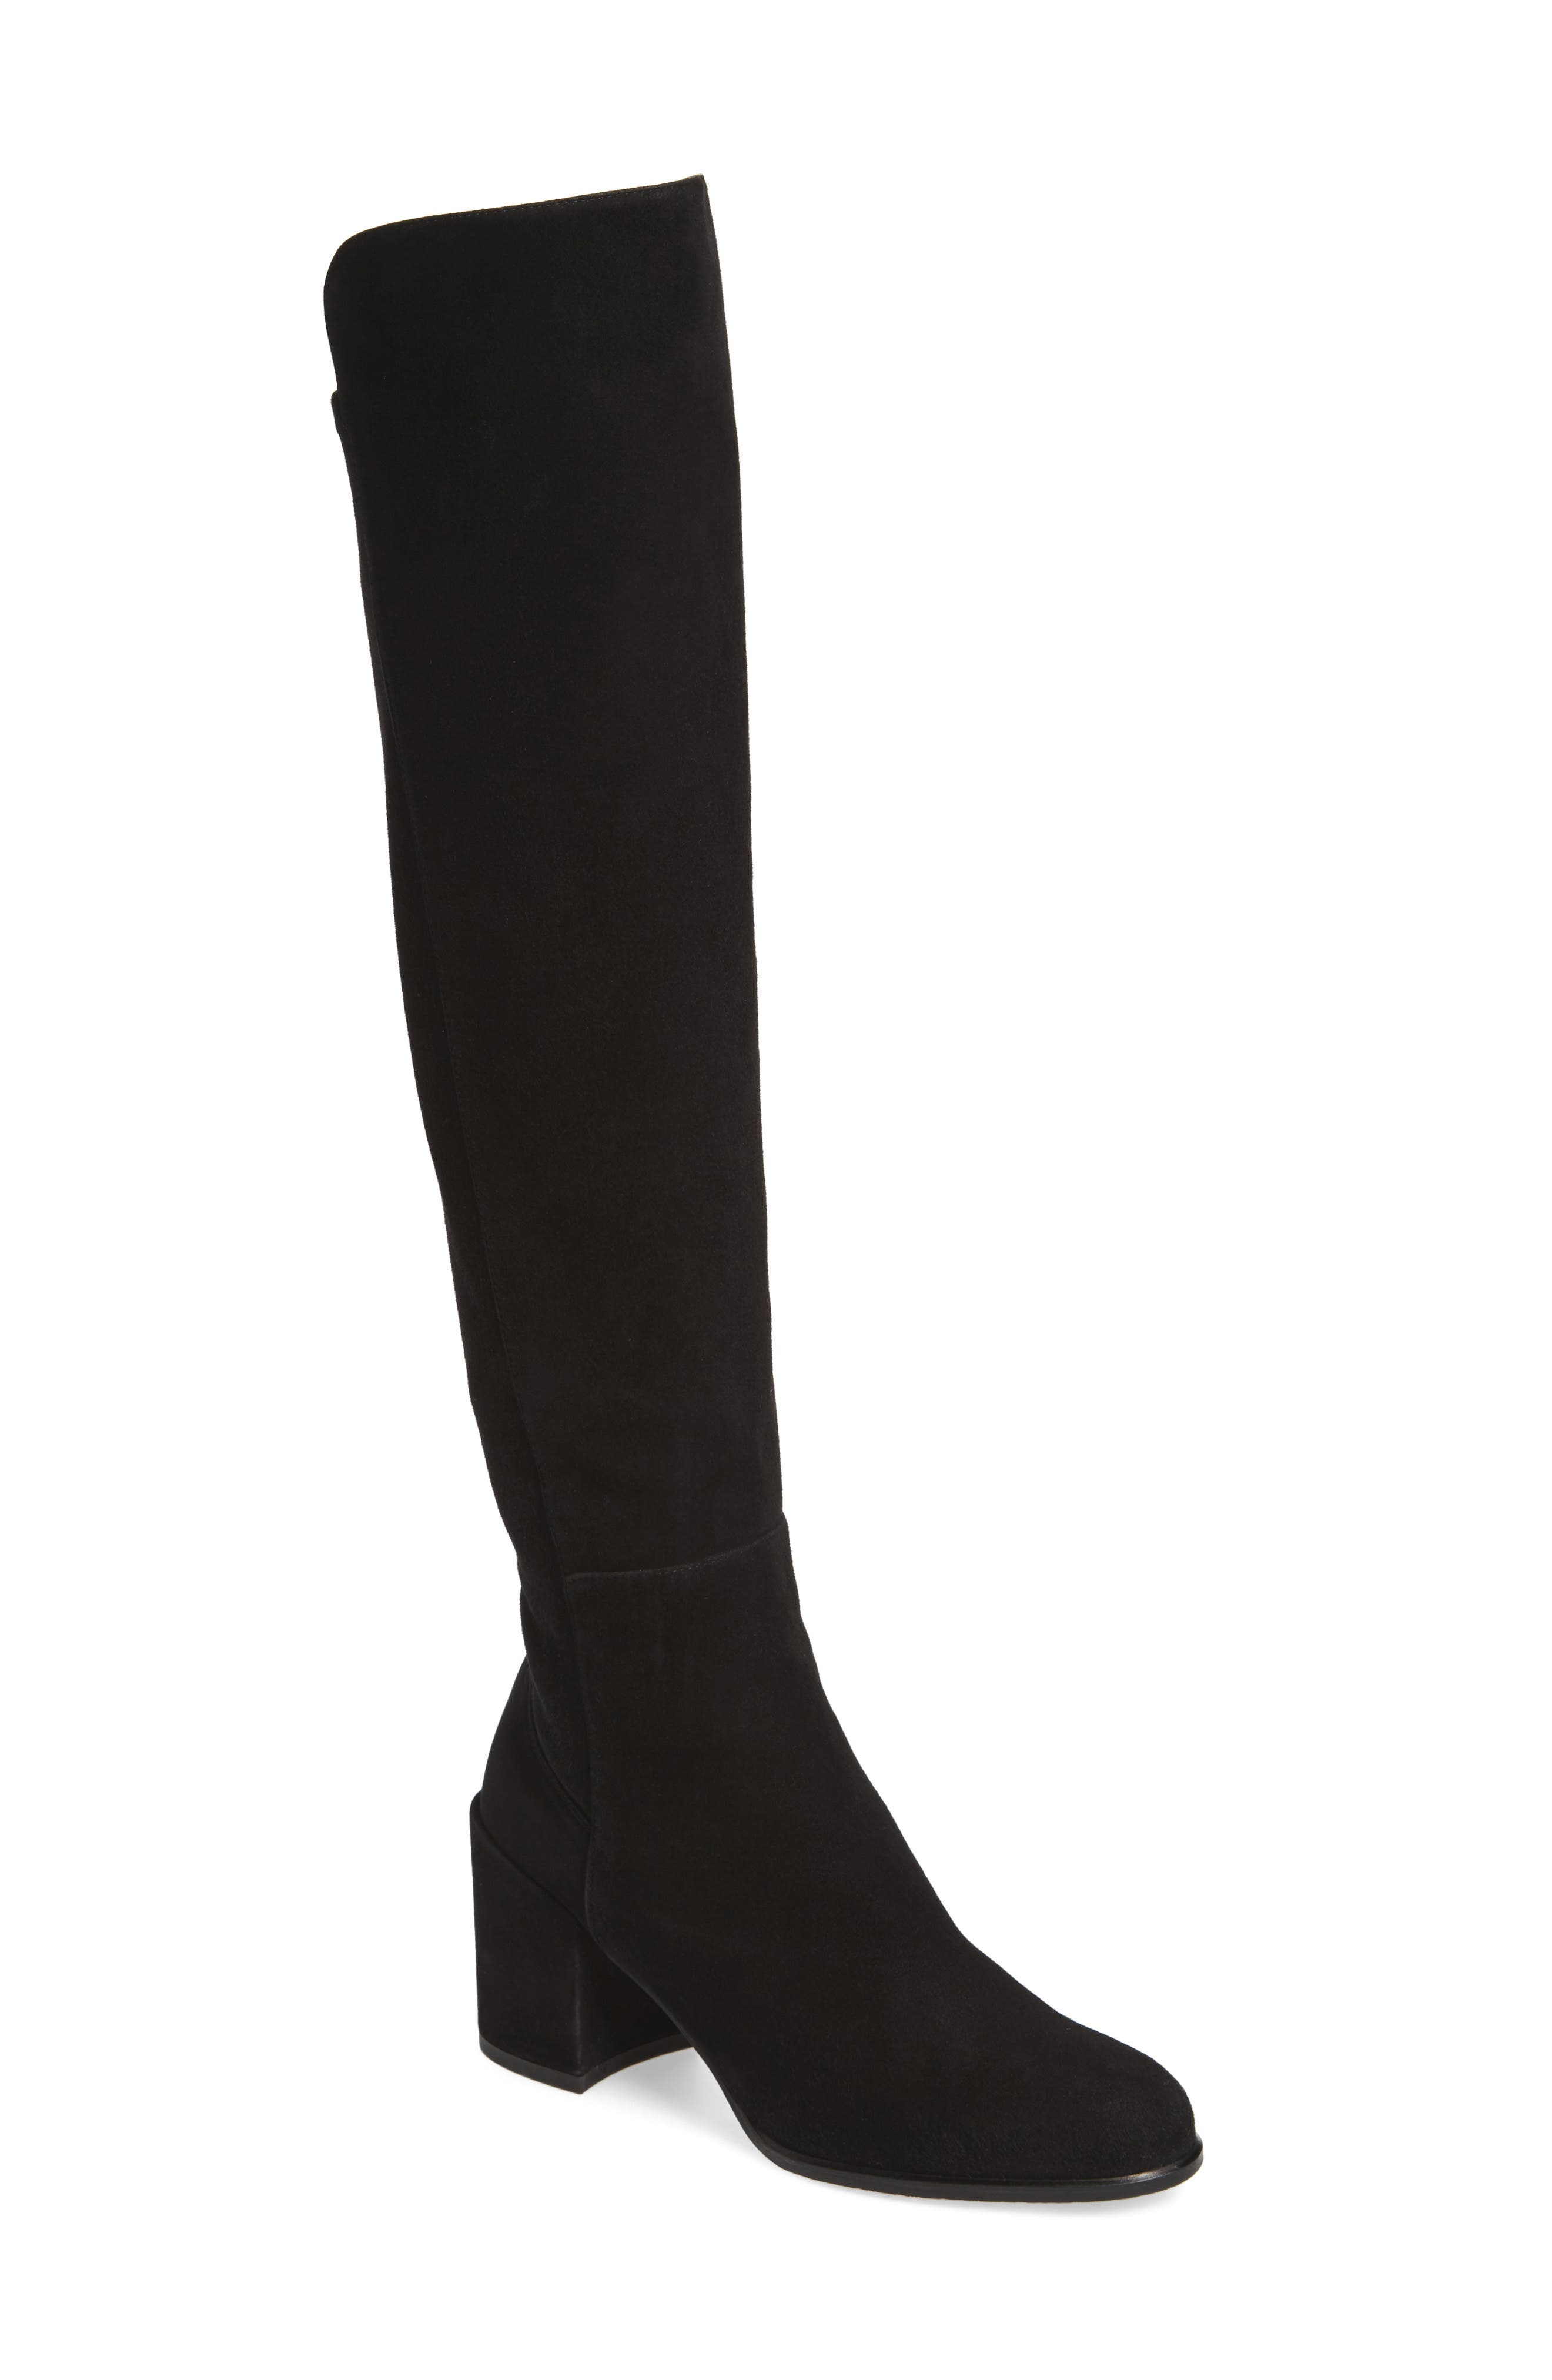 Alljack Over the Knee Boot,                         Main,                         color, 002